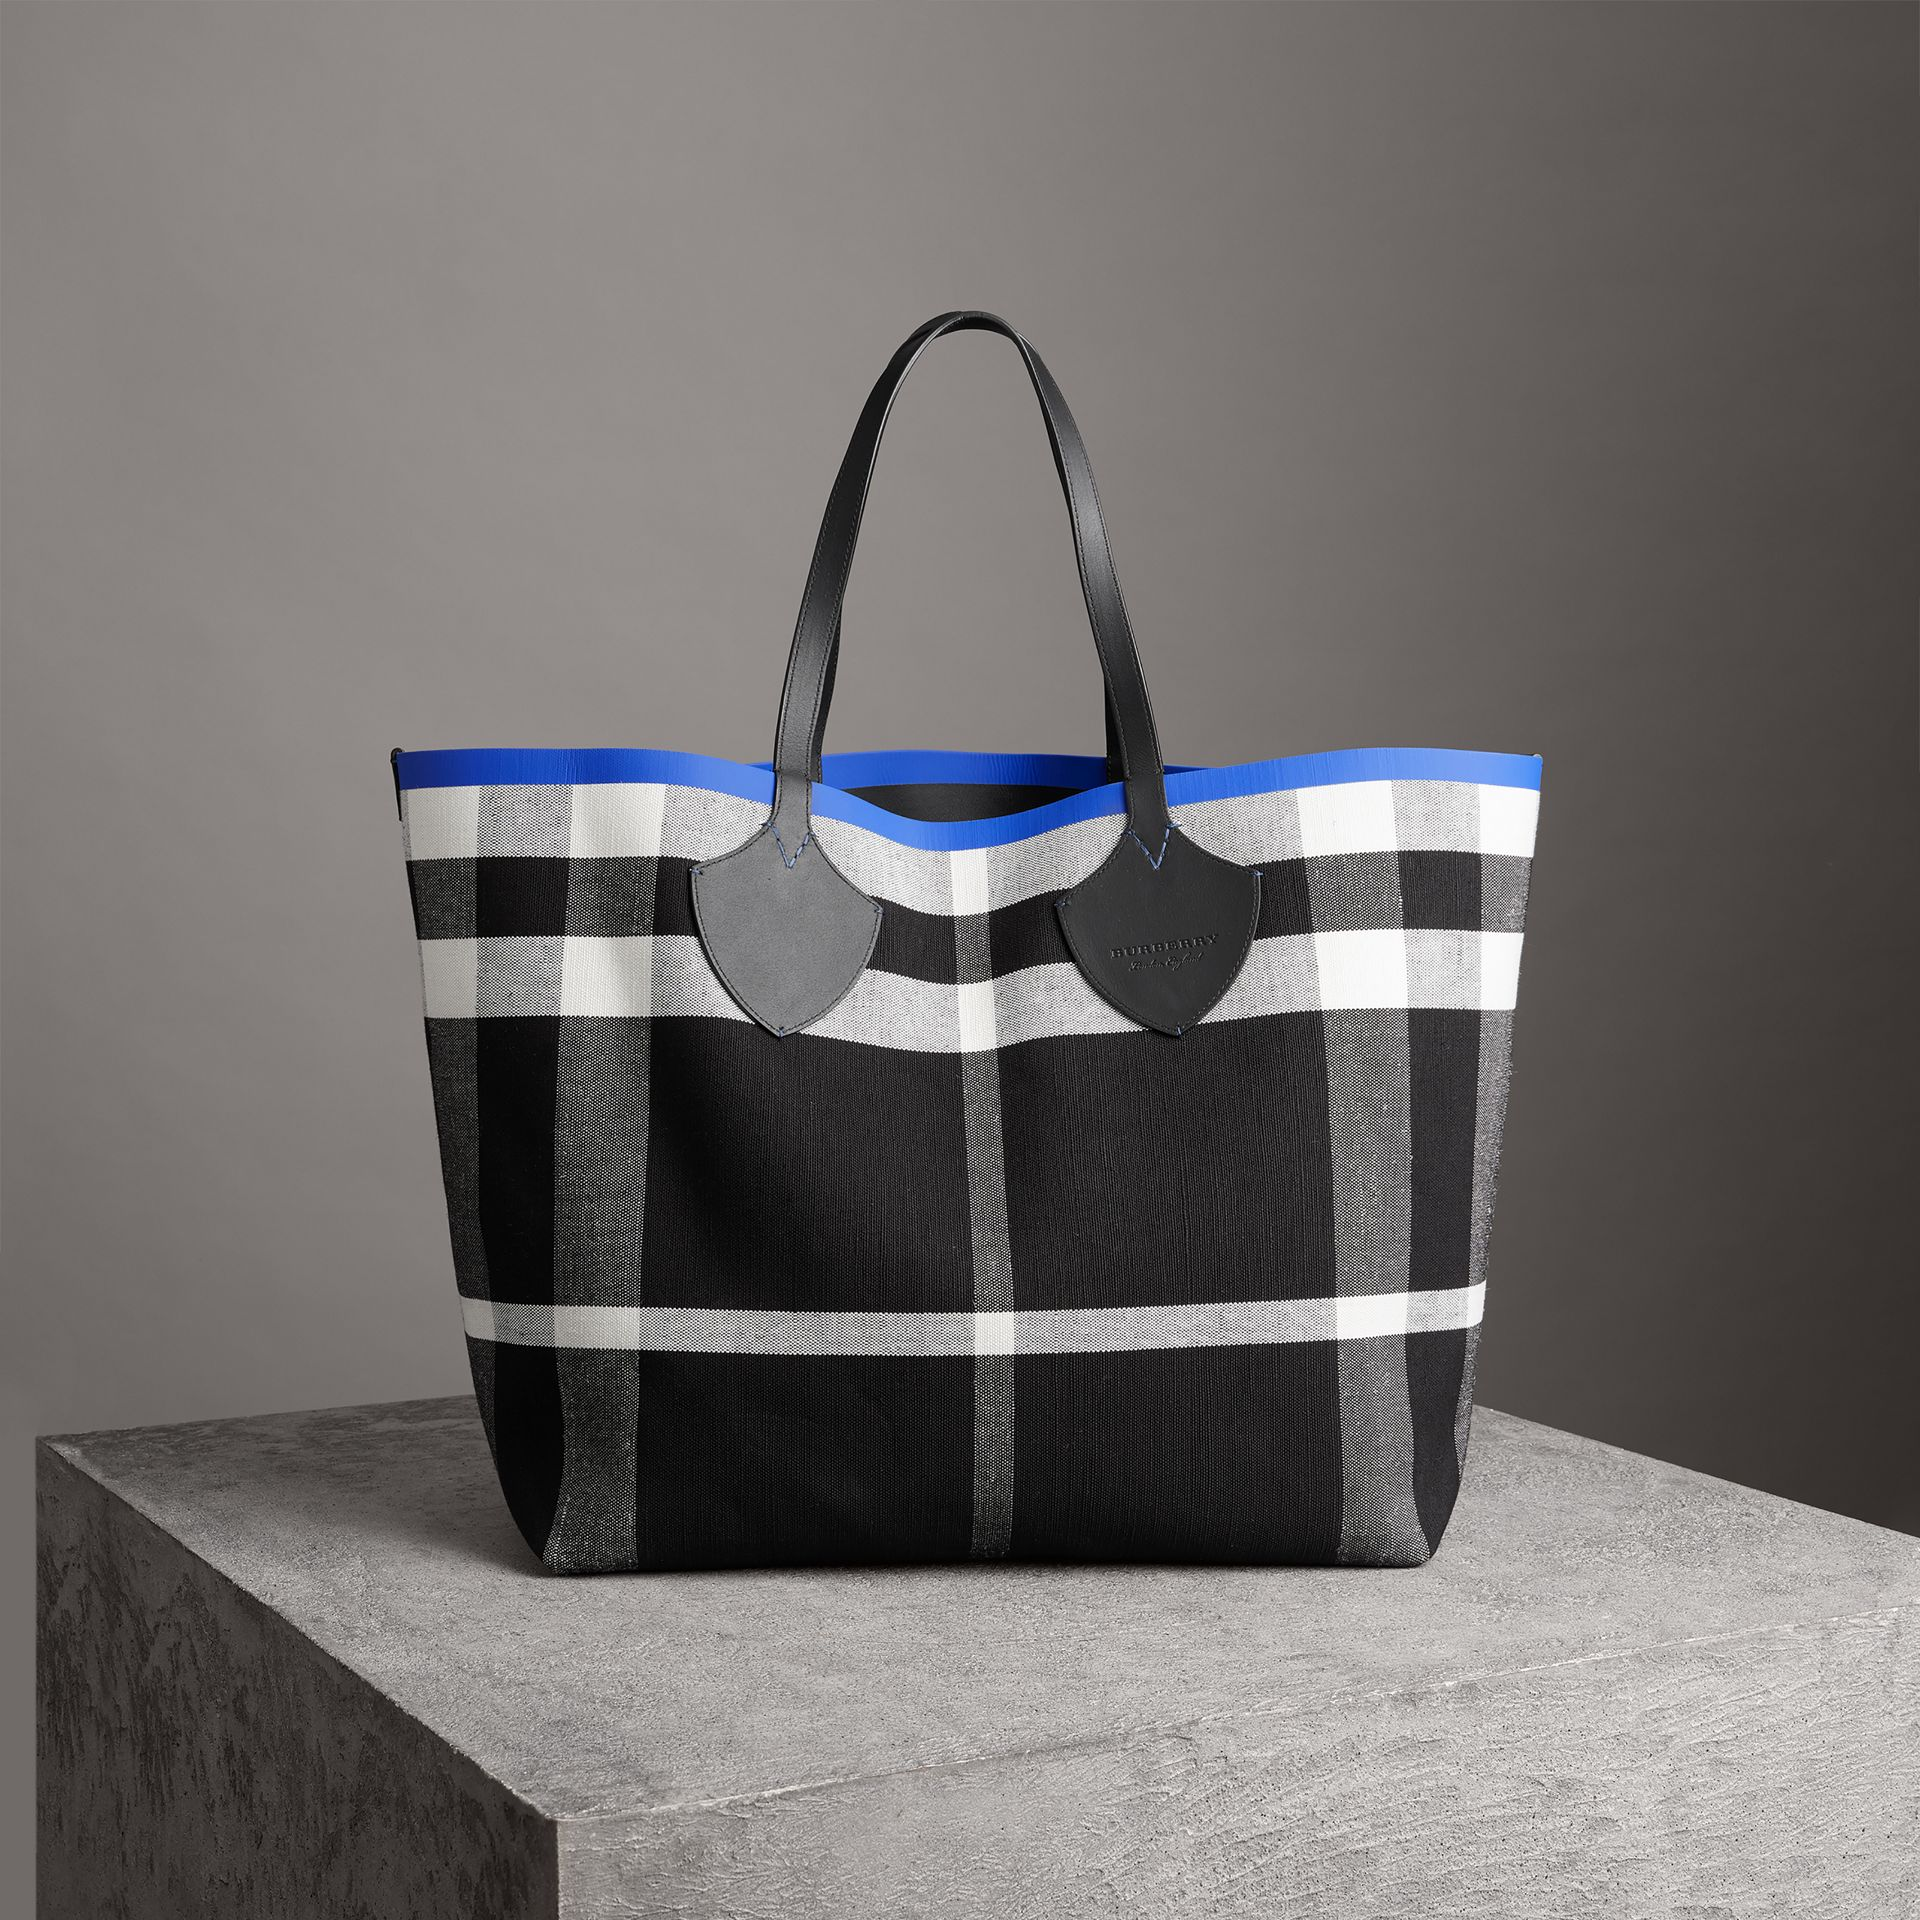 Borsa tote The Giant reversibile in cotone con motivo Canvas check e pelle (Mirtillo/nero) | Burberry - immagine della galleria 0